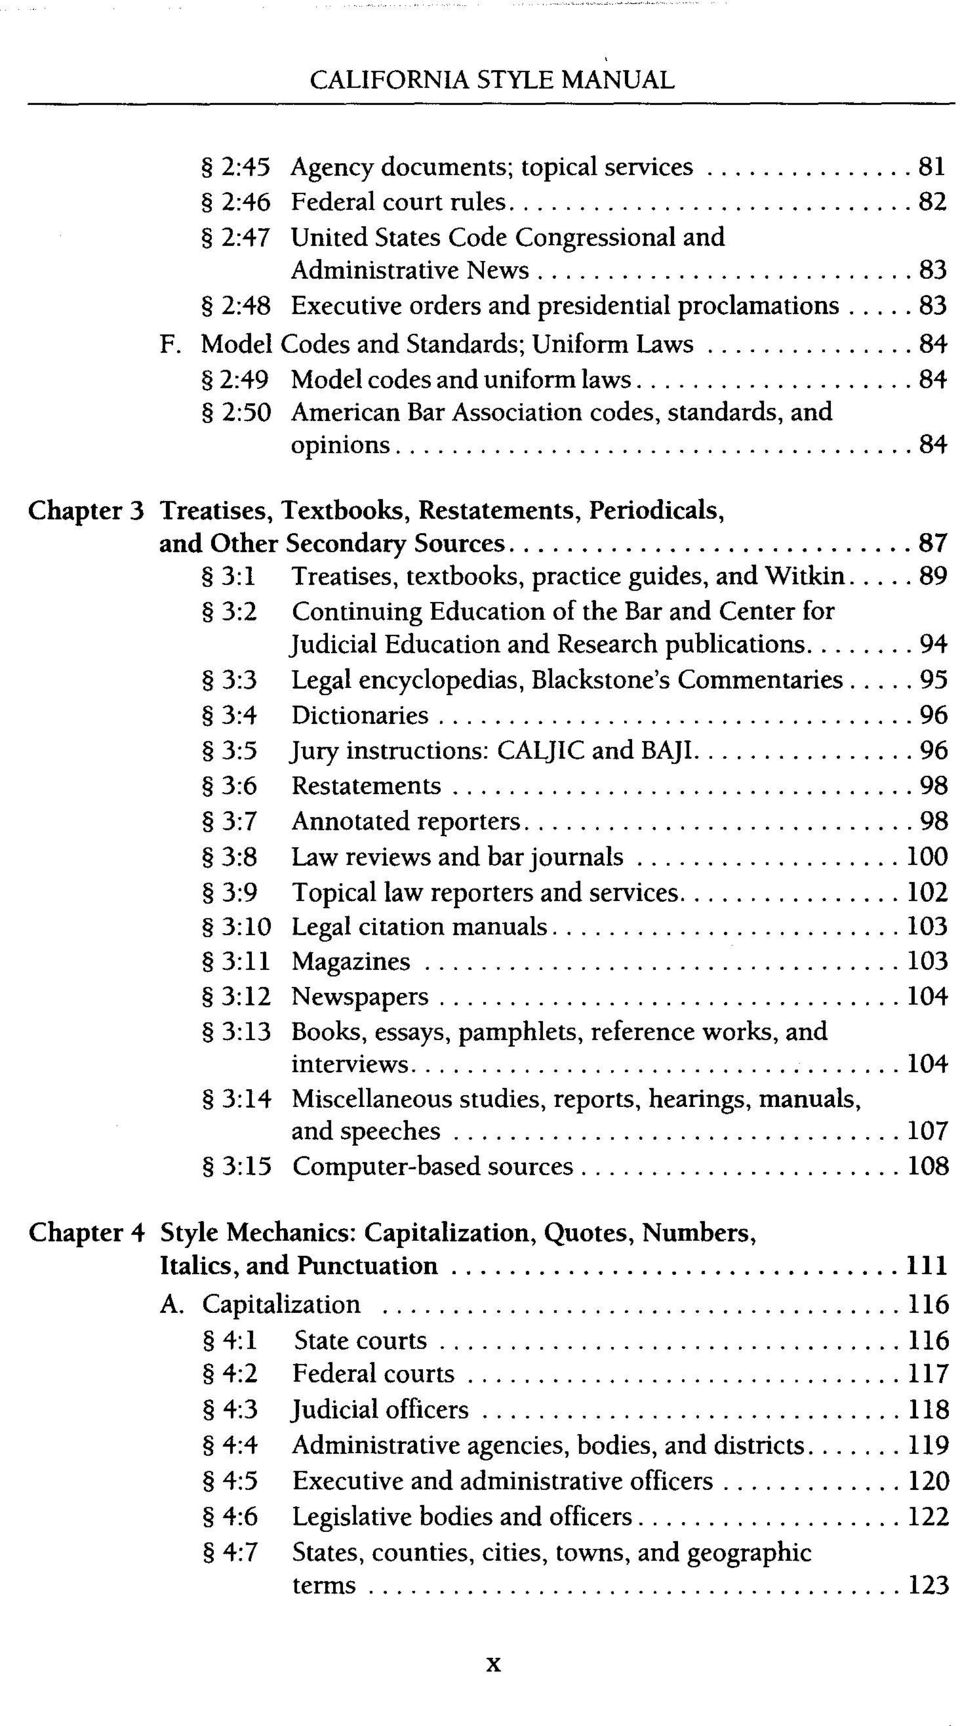 11 TABLE OF CONTENTS 4:8 Proper names, derivative words, numbered items, ...